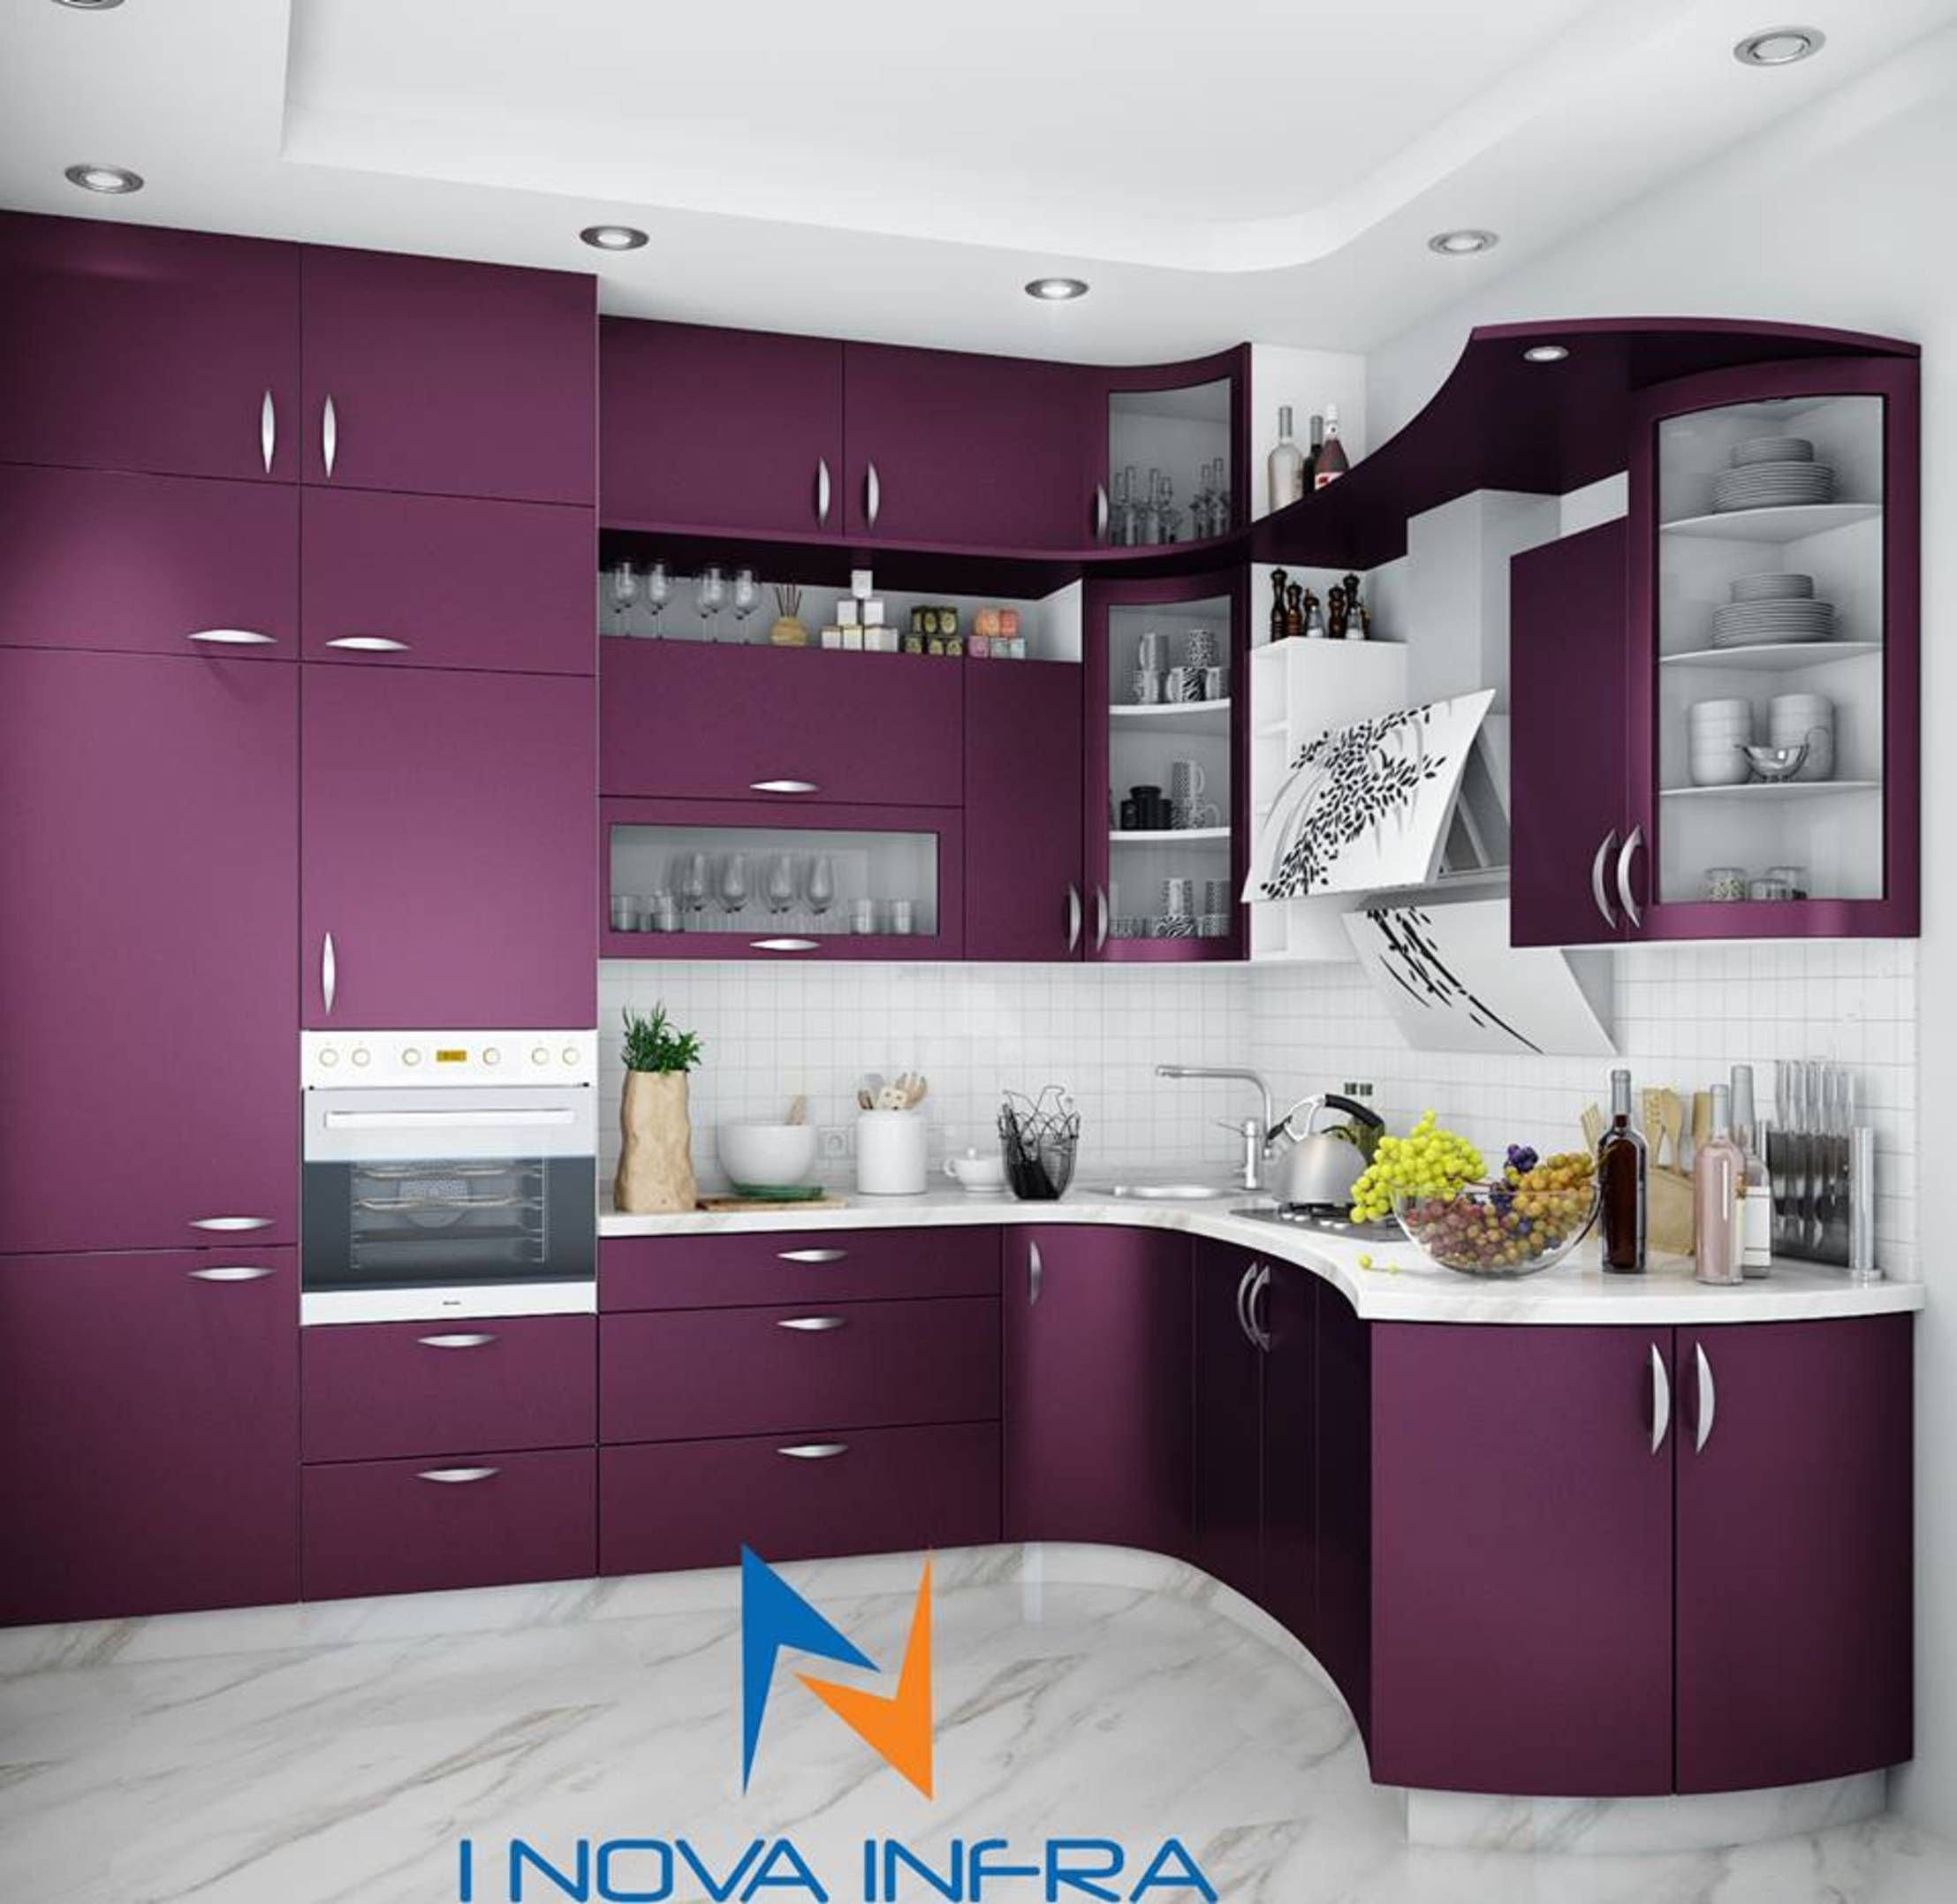 6 Ways To Store More In Your Small Indian Kitchen Kitchen Room Design Simple Kitchen Design Kitchen Cupboard Designs